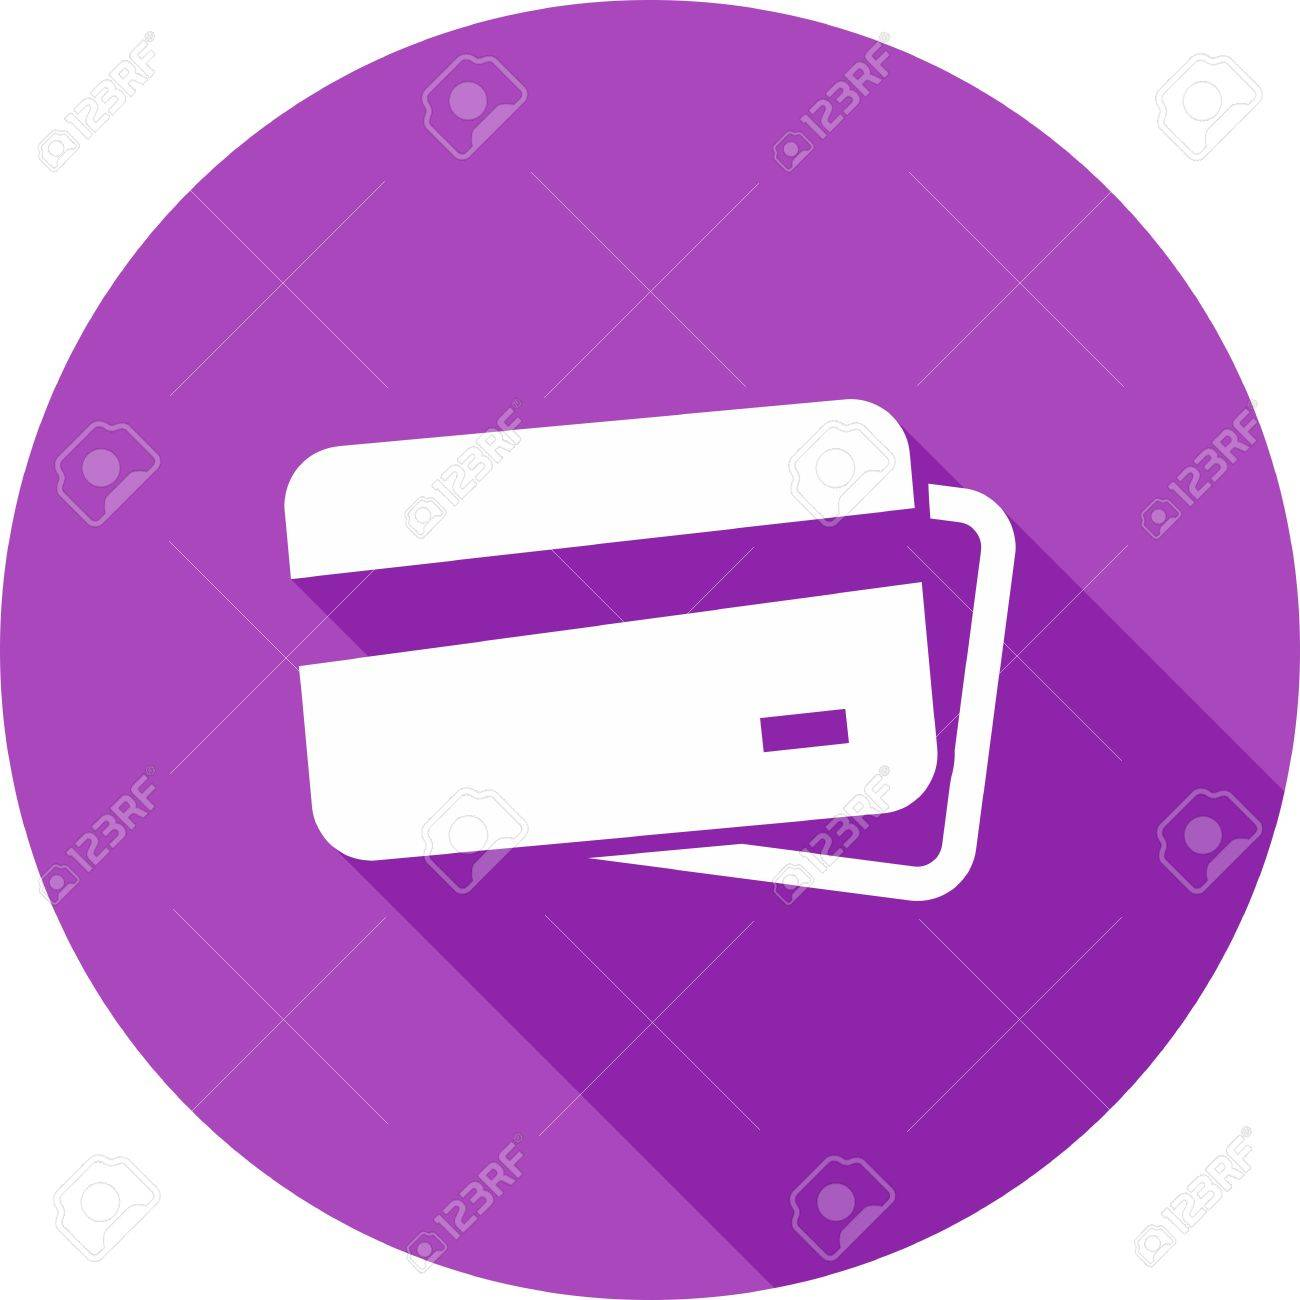 Paypal business debit card limit images free business cards business debit card application image collections free business business debit card application gallery free business cards magicingreecefo Images